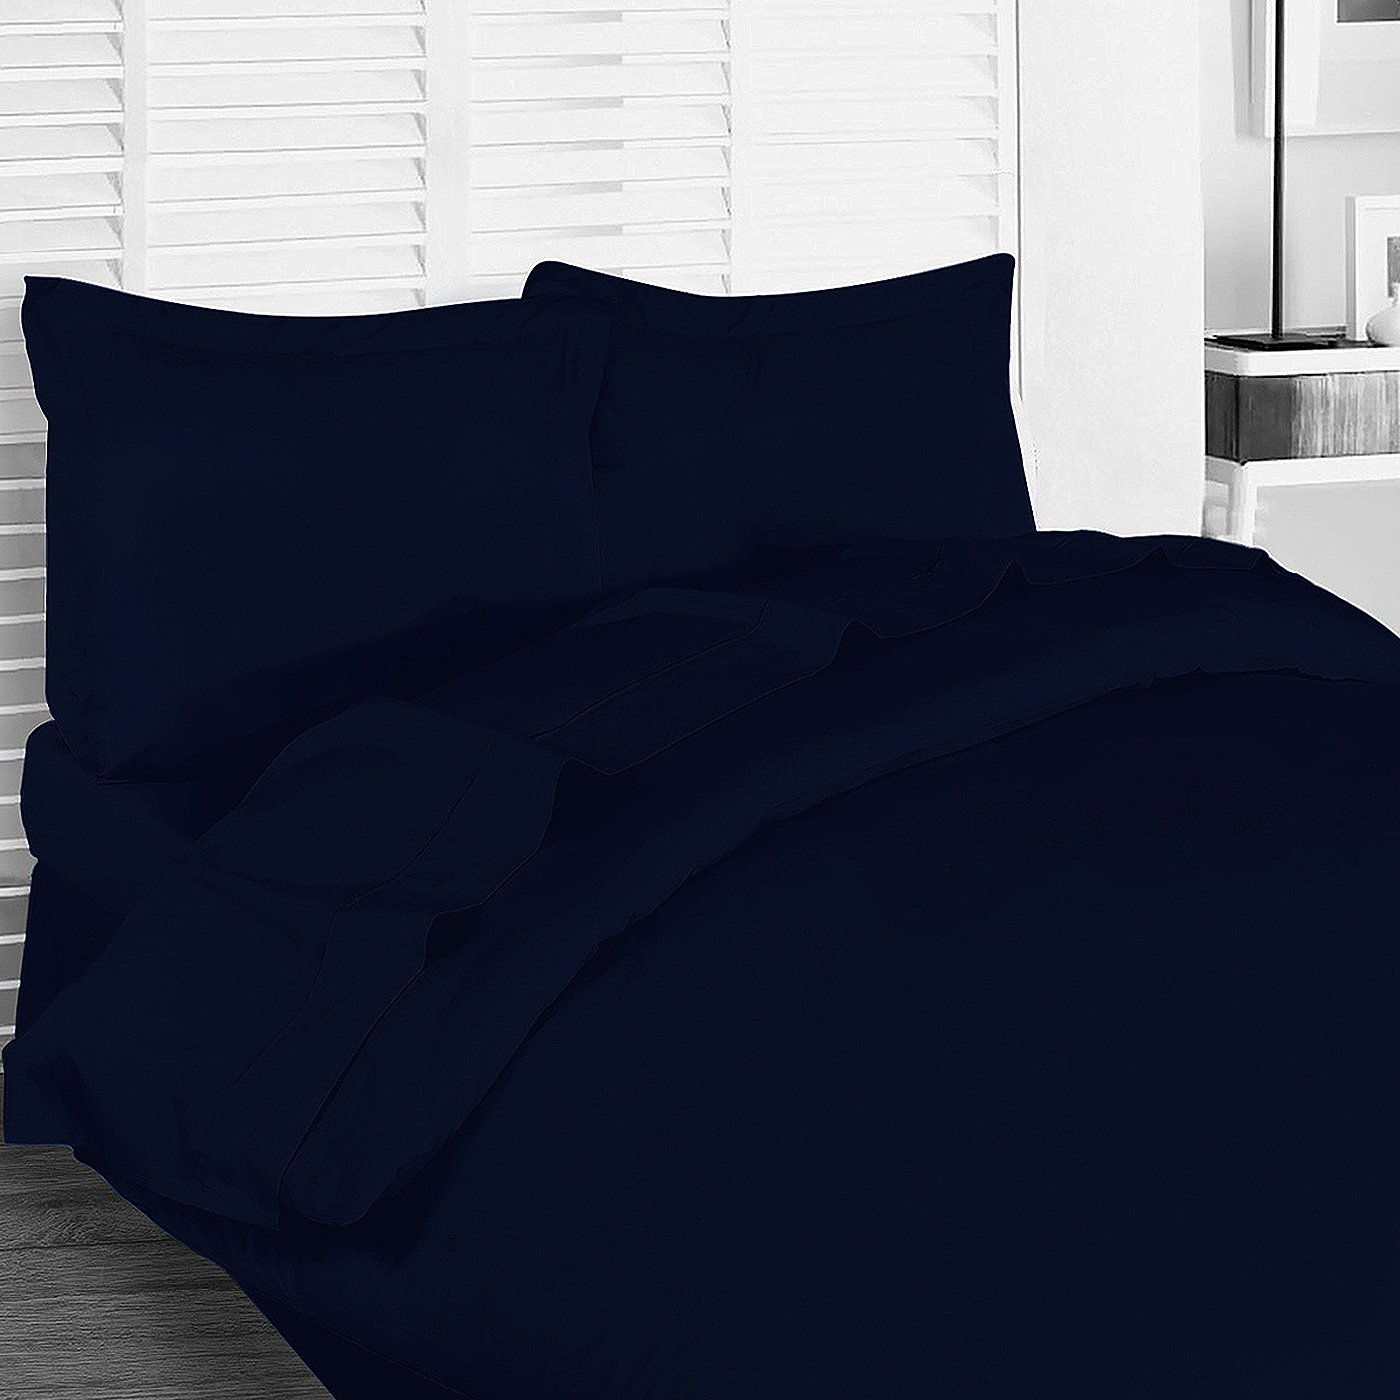 Utopia Bedding 3 Piece Queen Duvet Cover Set with 2 Pillow Shams, Navy